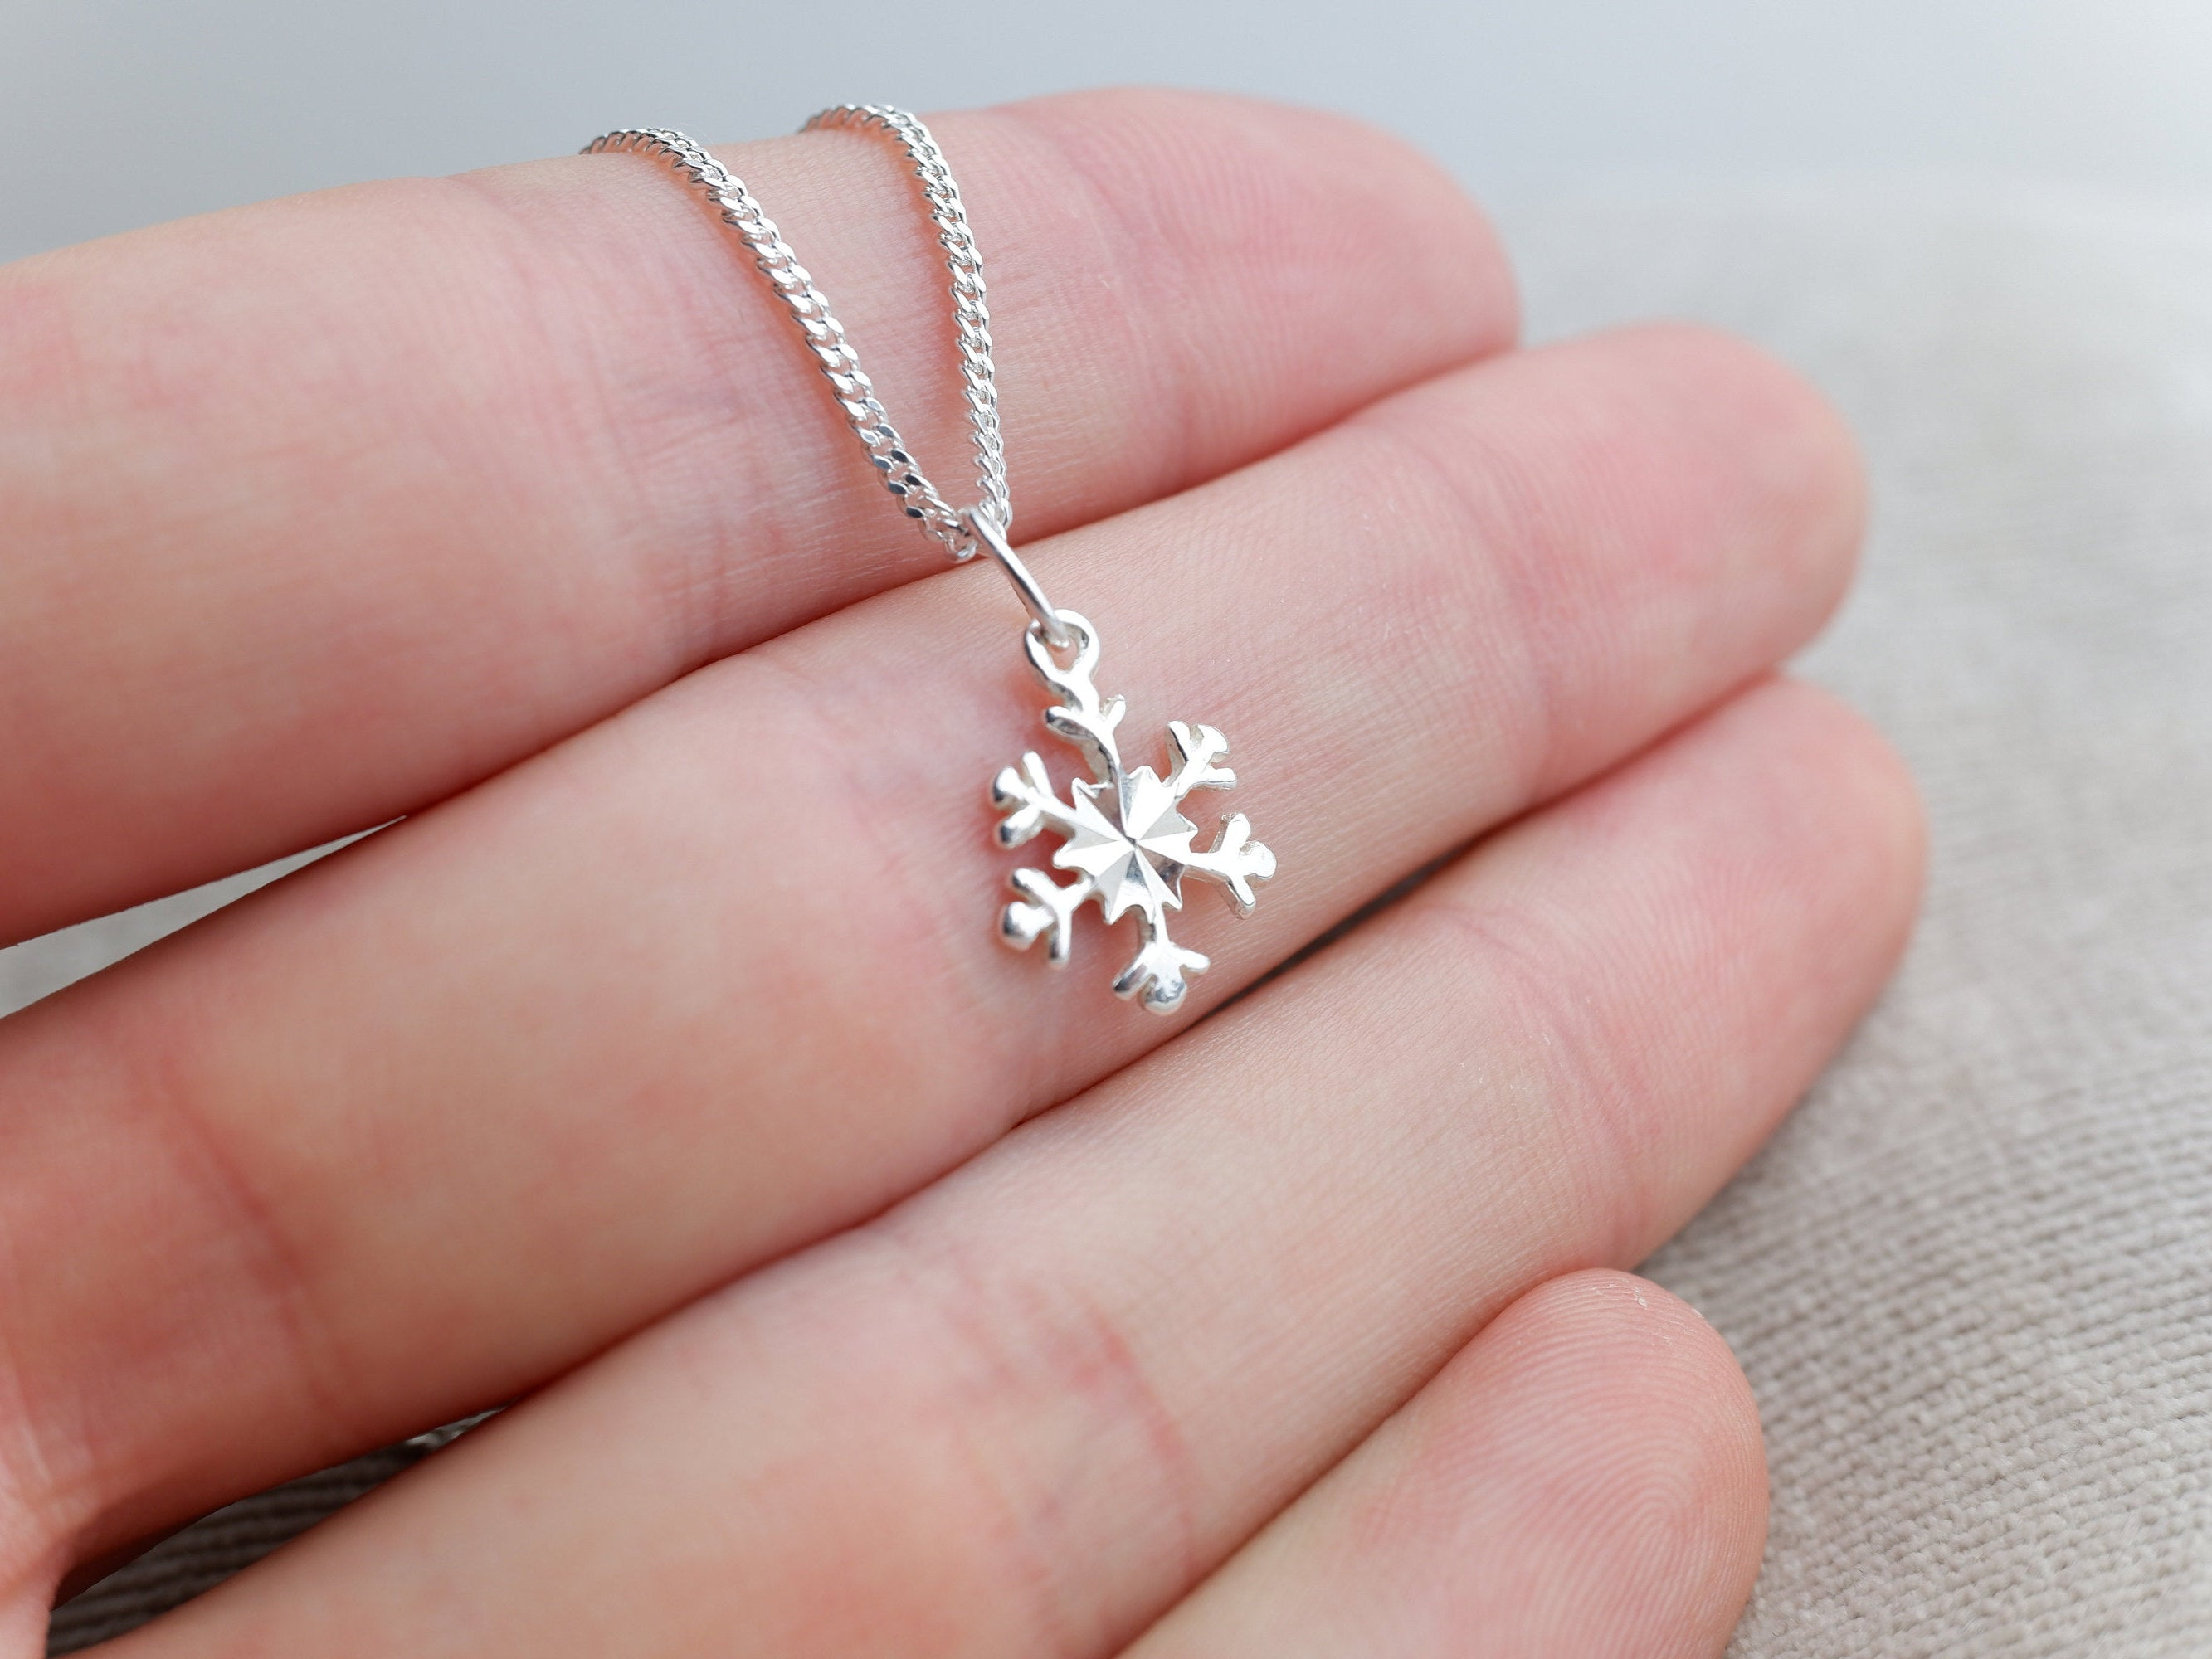 Sterling Silver Snow Flake Charm Pendant Necklace - Diamond Cut Sterling Silver Chain - Christmas Jewellery